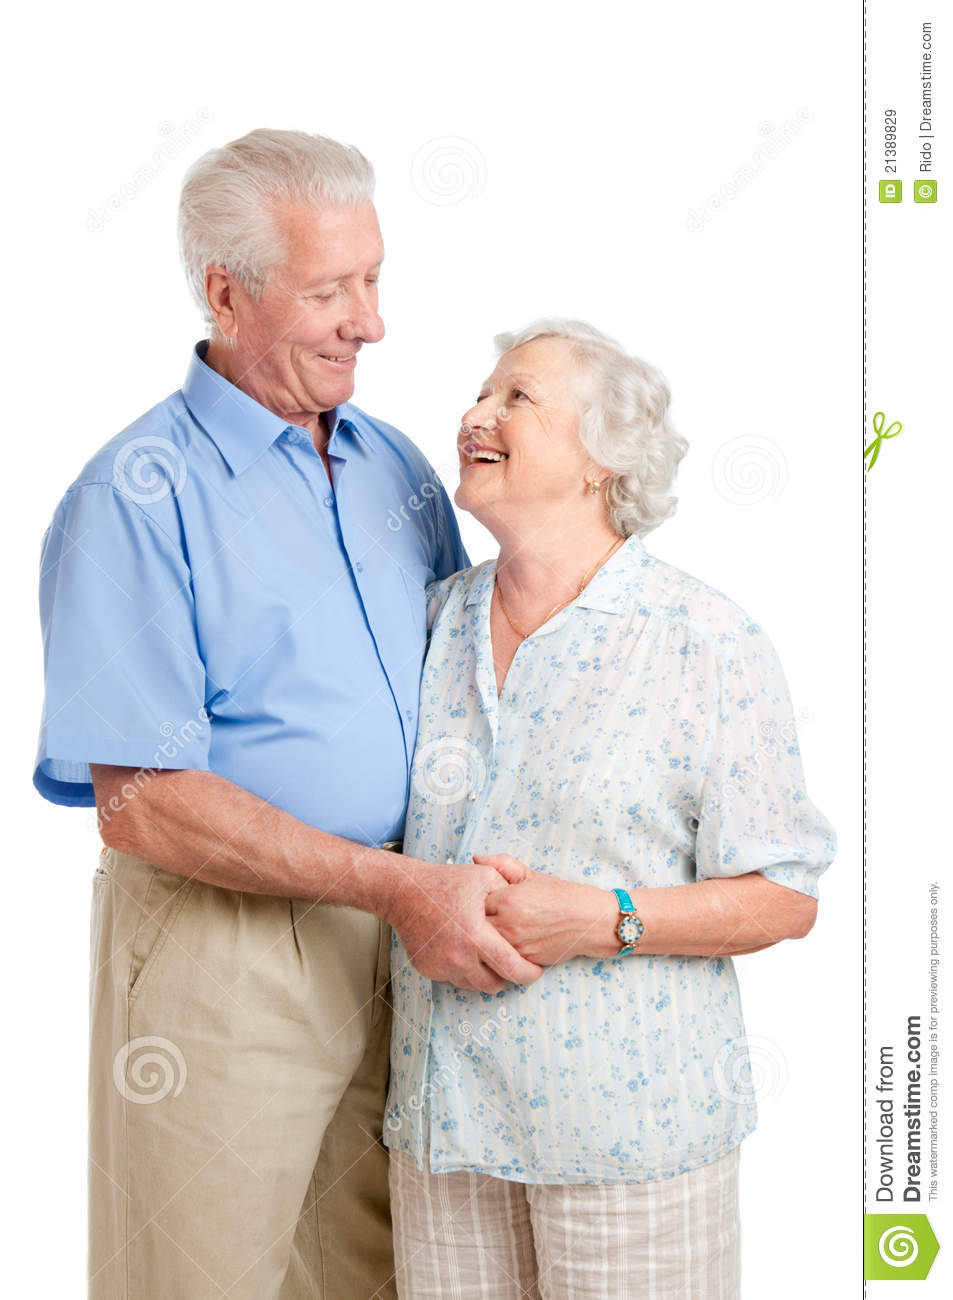 old age together royalty free stock images image 21389829 ugly old lady clipart old lady clipart cane glasses